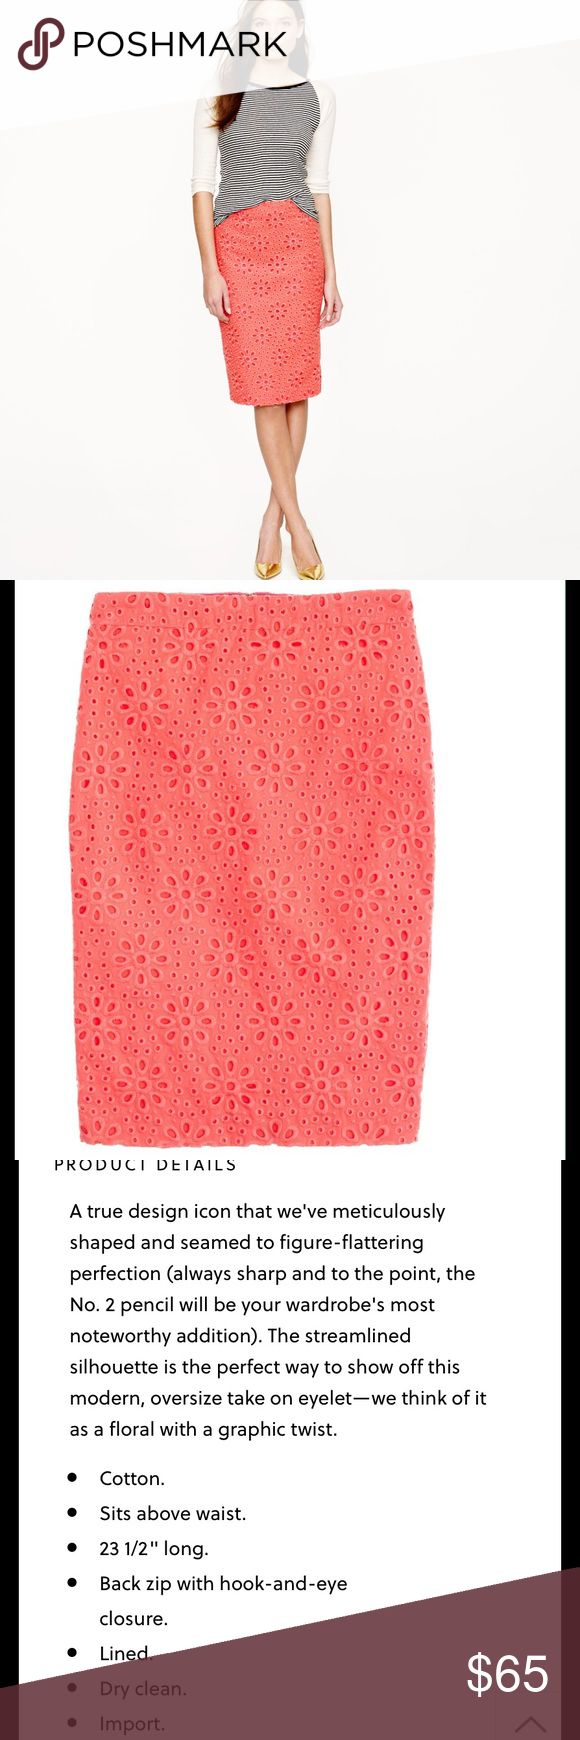 🆕 Pinwheel Eyelet Pencil💕🌸 Jcrew No.2 pencil shirt in a pinwheel eyelet.  Beautiful coral color. This shirt has Summer written all over it.  Perfect for your summer wardrobe. Like new condition. Make me a reasonable offer. J. Crew Skirts Pencil